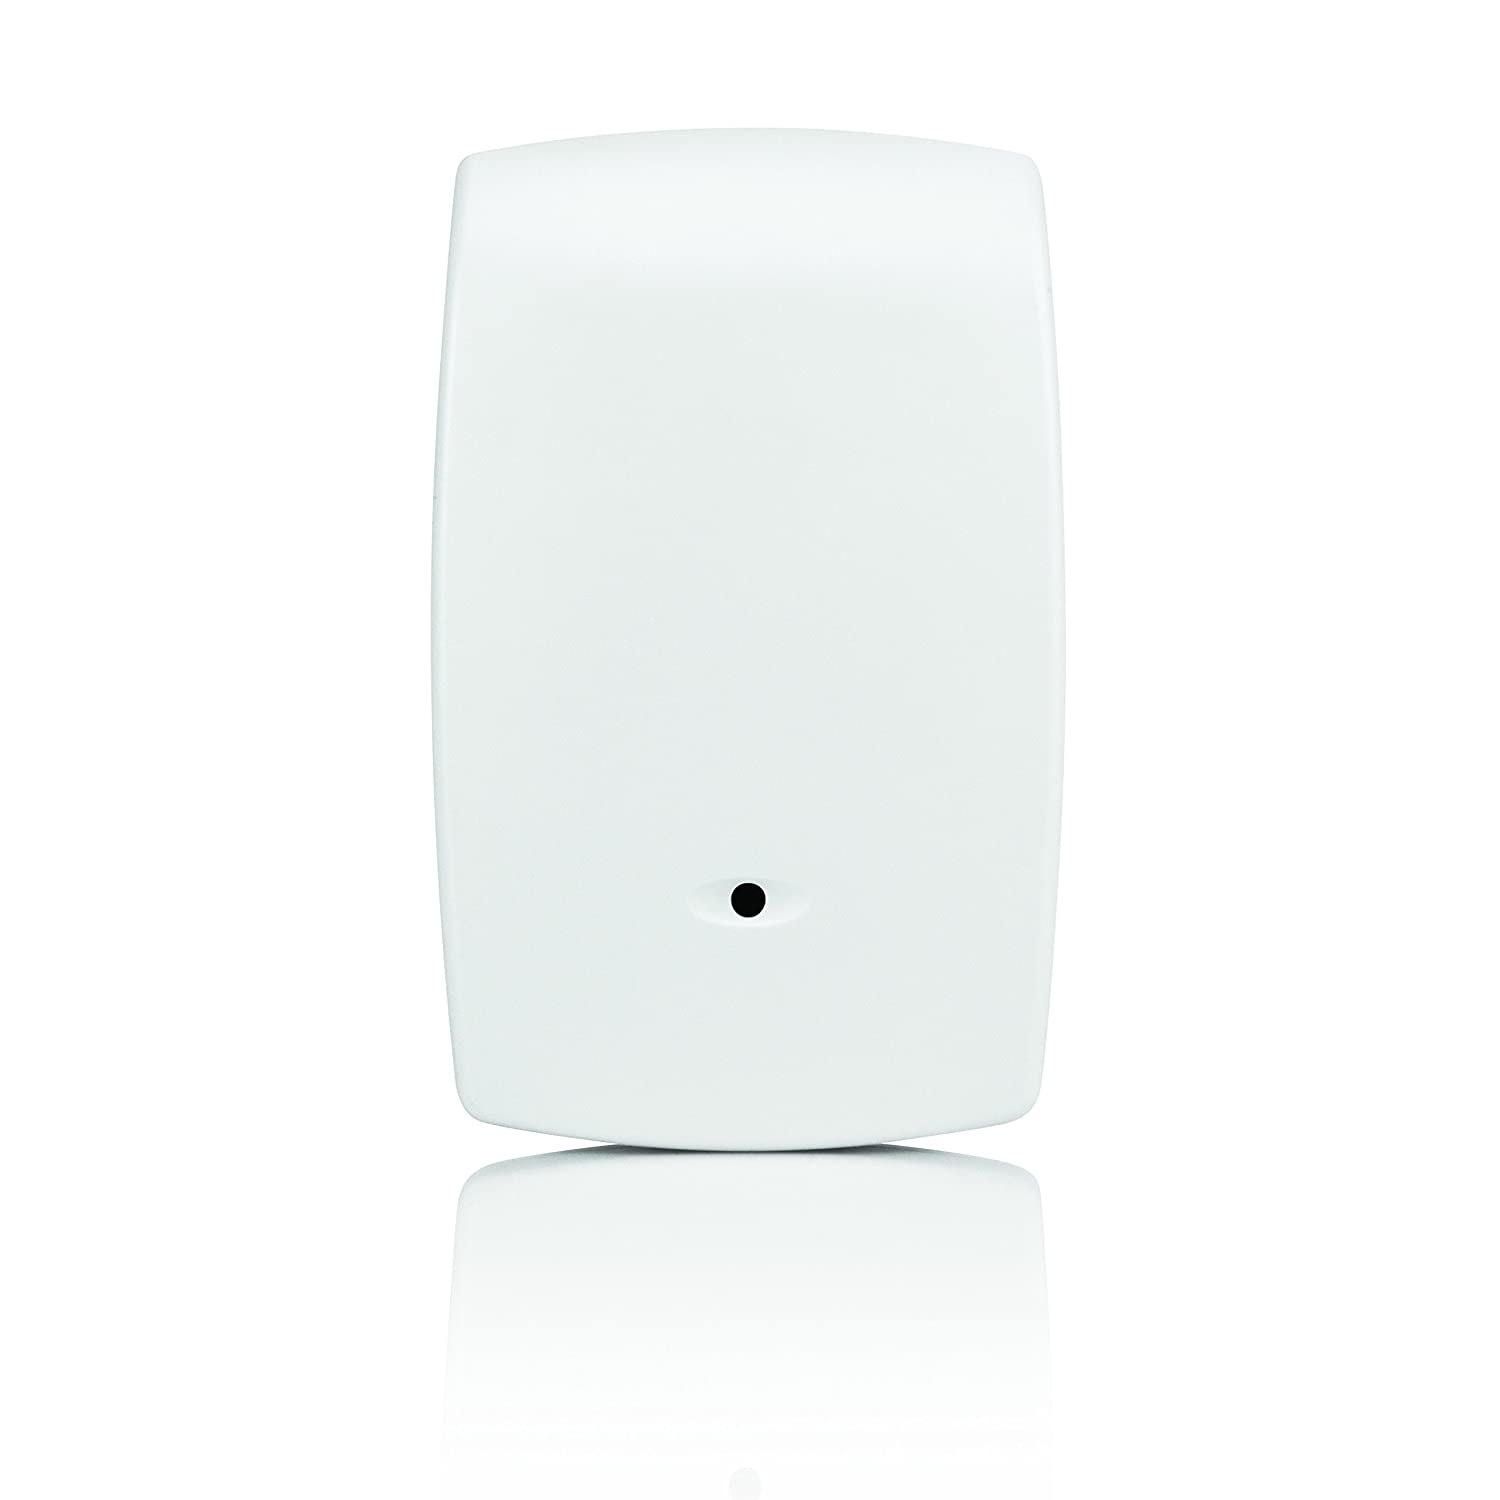 Honeywell, FG8MS, Sensor inalámbrico de Rotura de Cristales, Color Blanco: Amazon.es: Bricolaje y herramientas